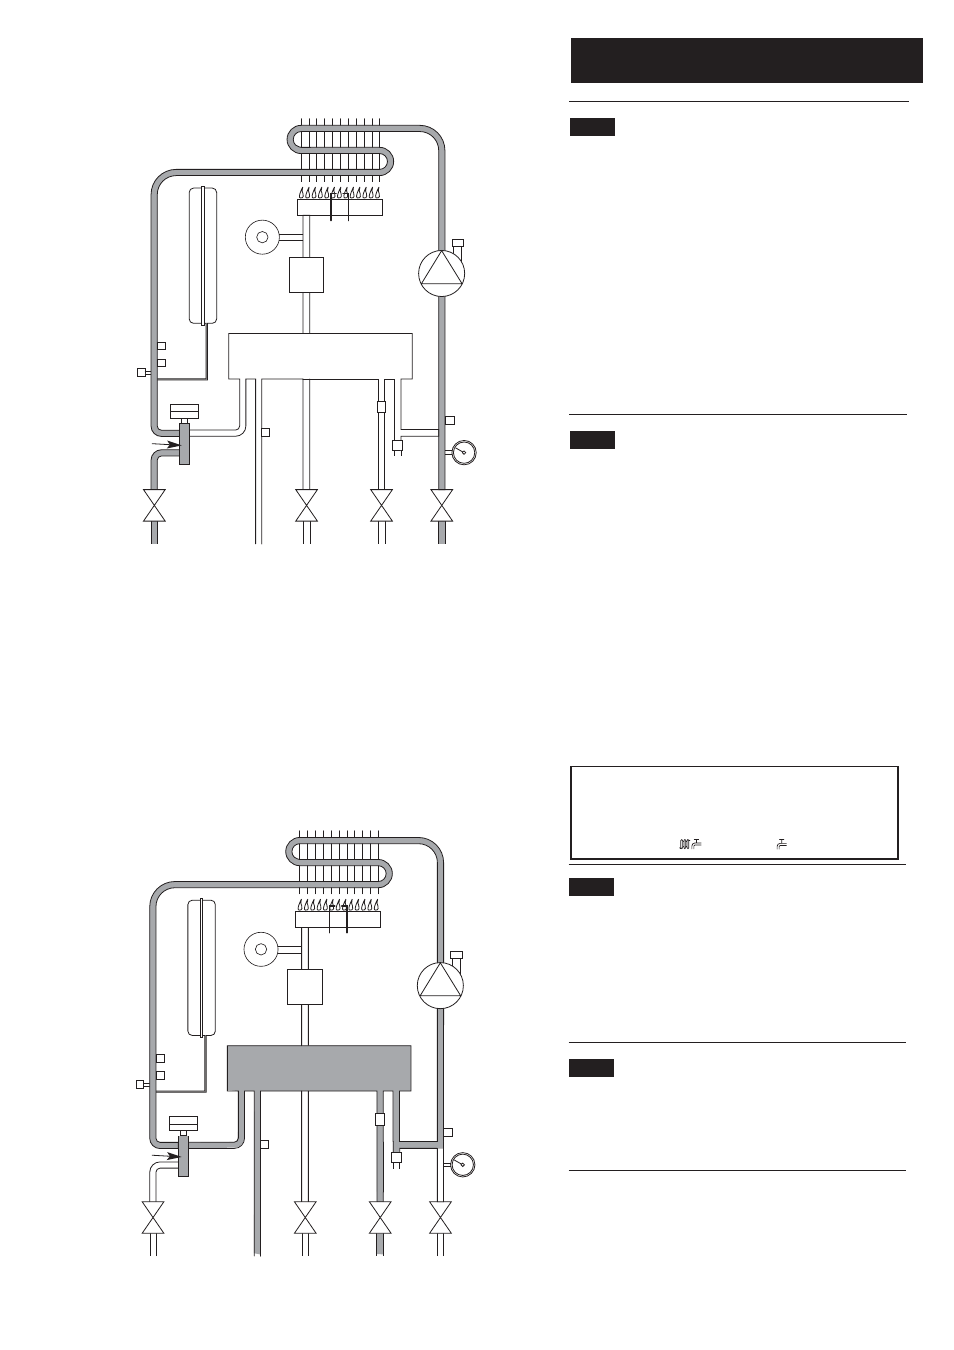 0 Appliance Operation Baxi Potterton Heatmax Combi He Condensing Fan Speed Over Ride Switch Combination Boiler User Manual Page